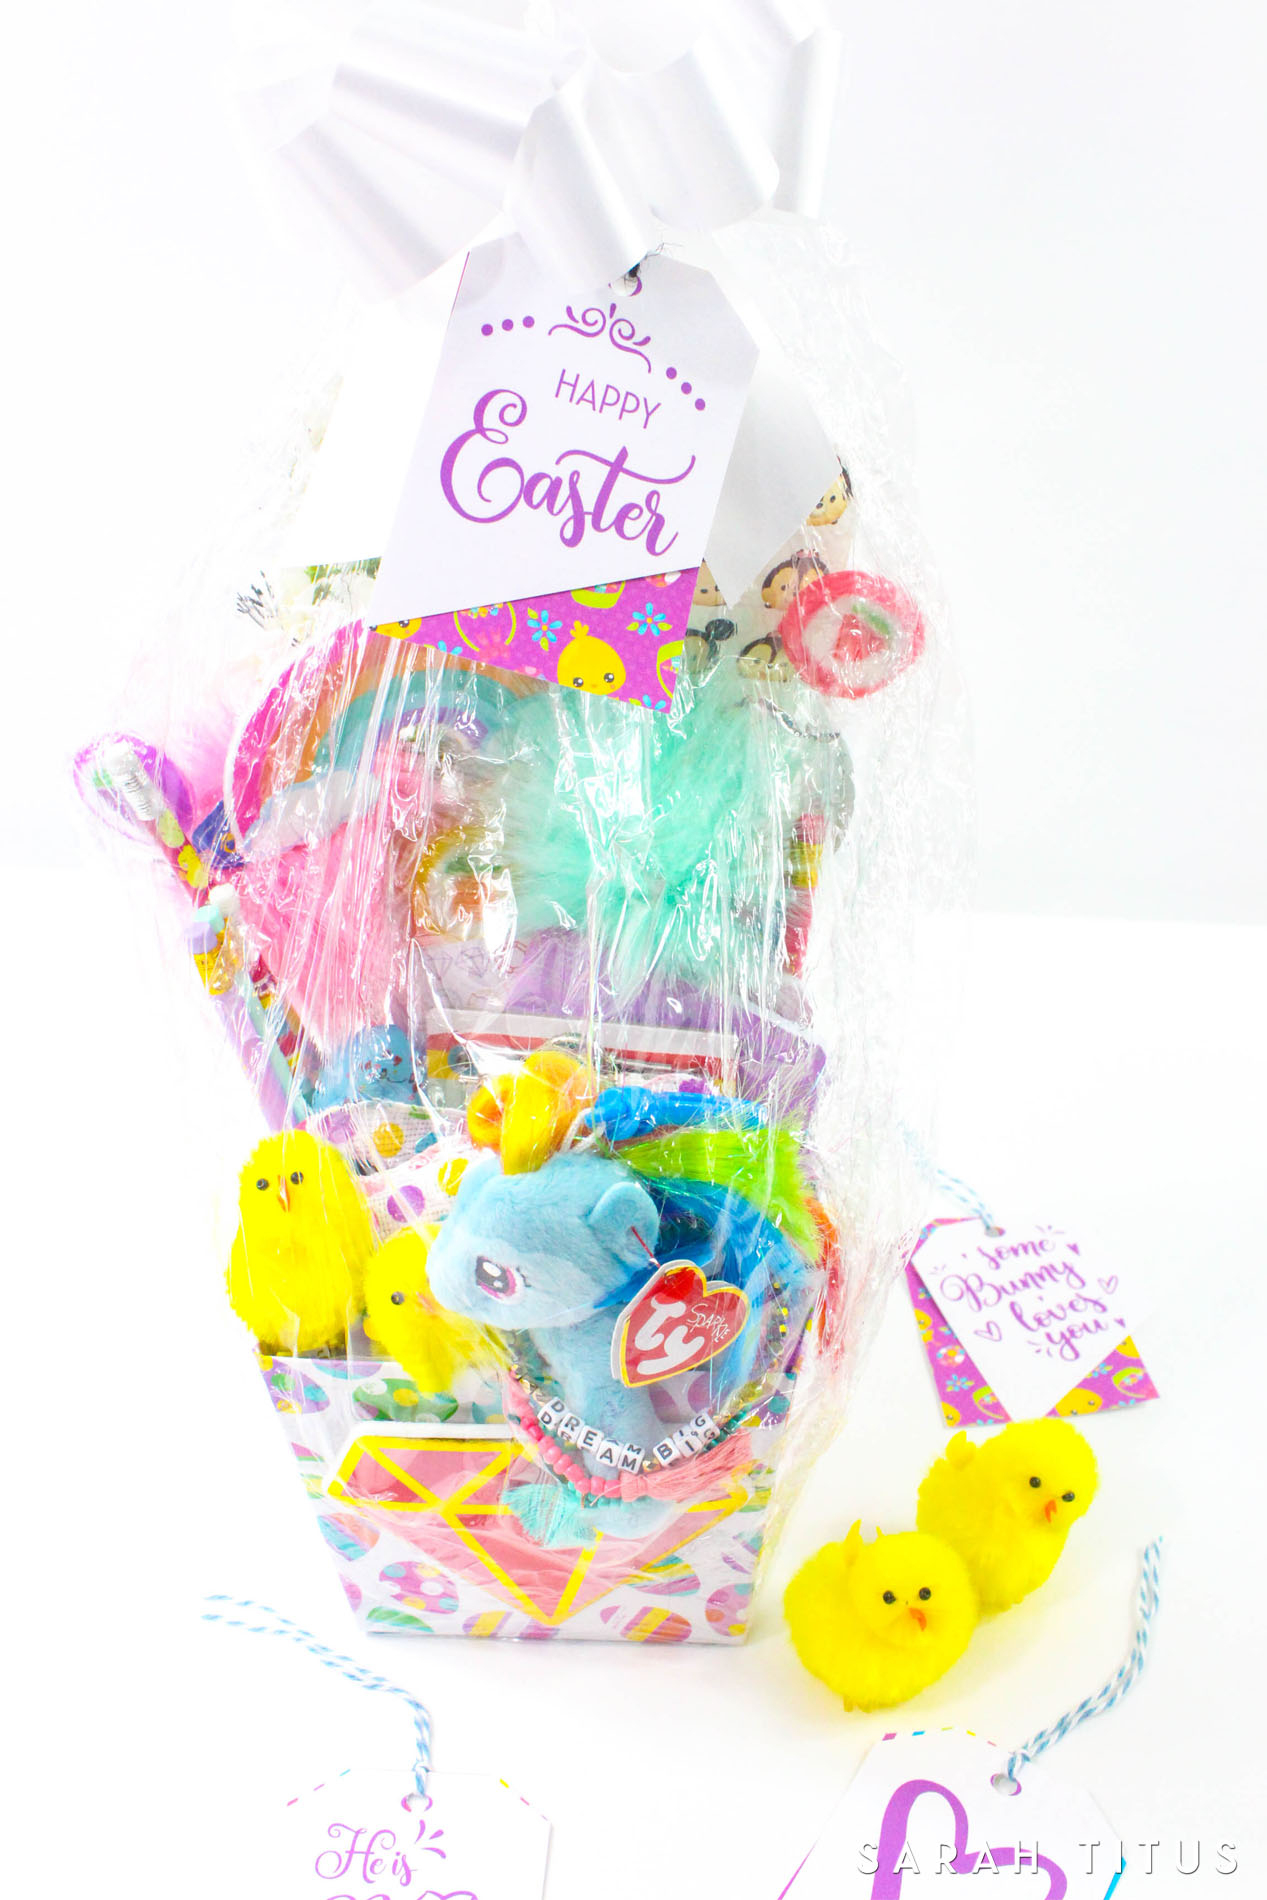 Free Printable Easter Gift Tags - Sarah Titus - Free Printable Easter Basket Name Tags